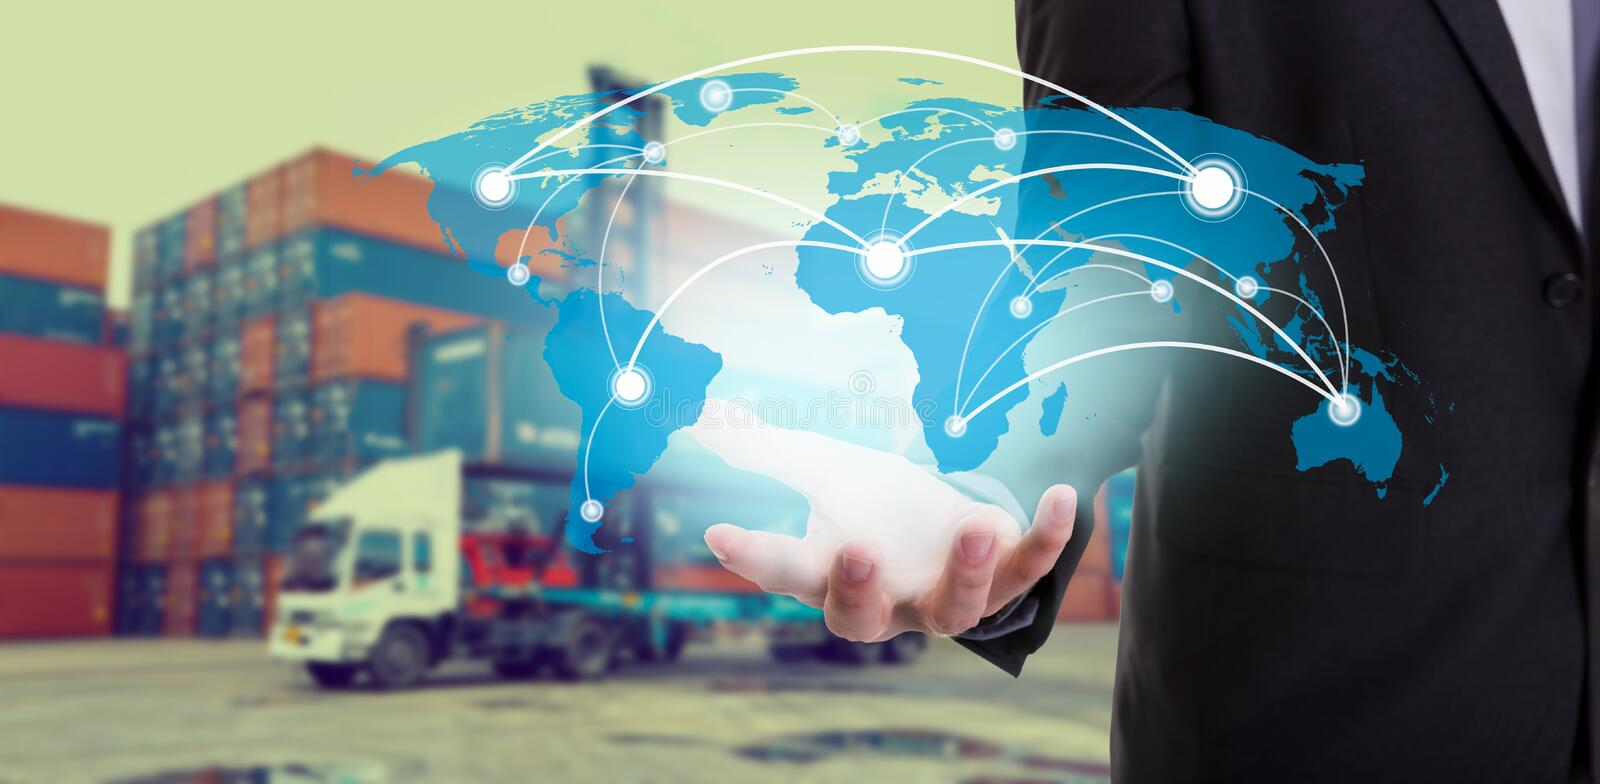 Global network coverage world map on hand of businessman ,Industrial Container Cargo freight ship at habor for Logistic Import Ex royalty free stock photo